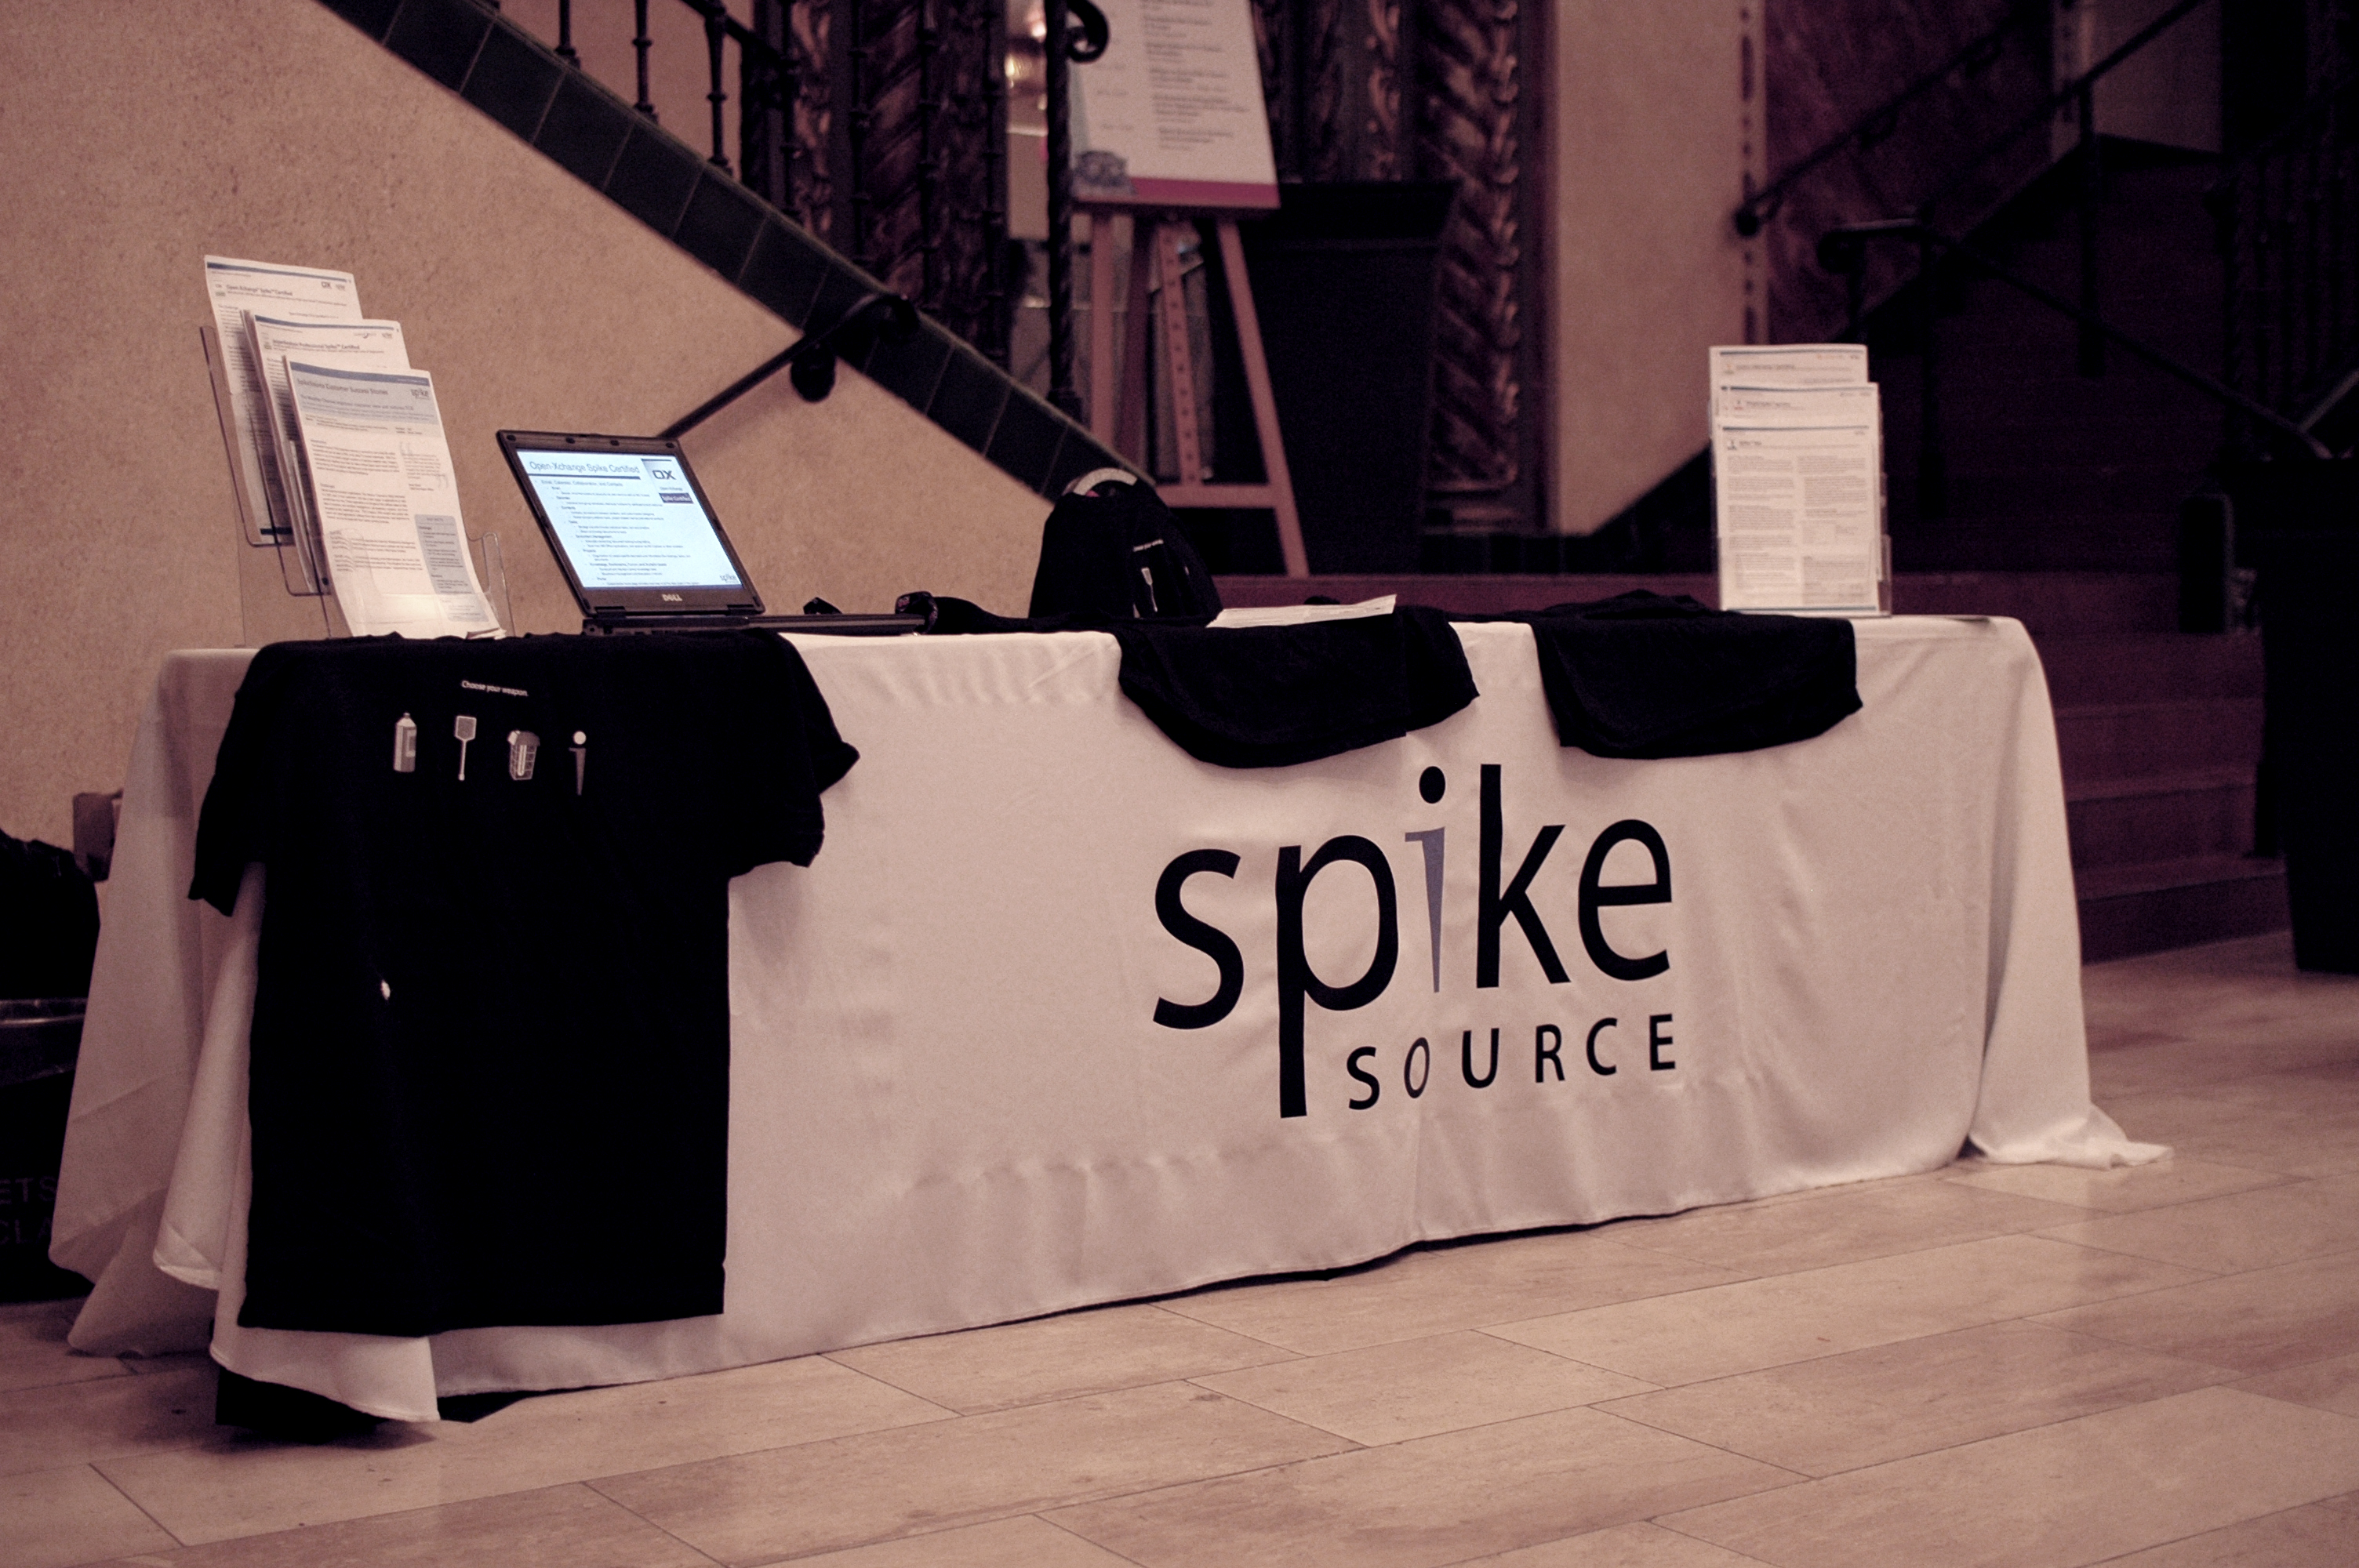 Spikesource